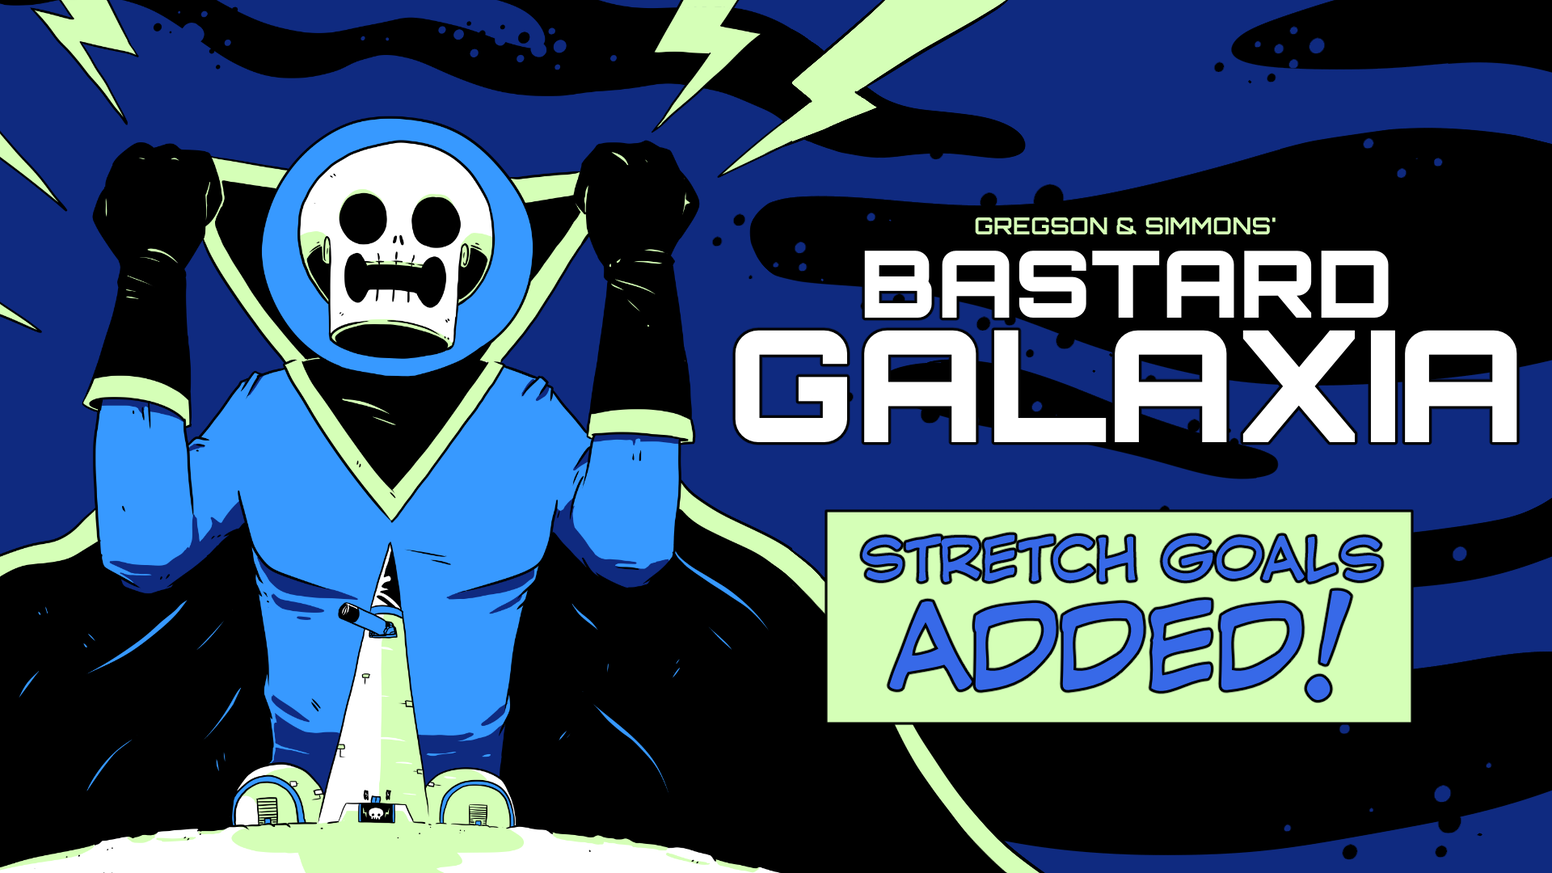 Bastard Galaxia is an evil villain trying to straddle the line between evil and marketable, and not letting his crew think he sold out!